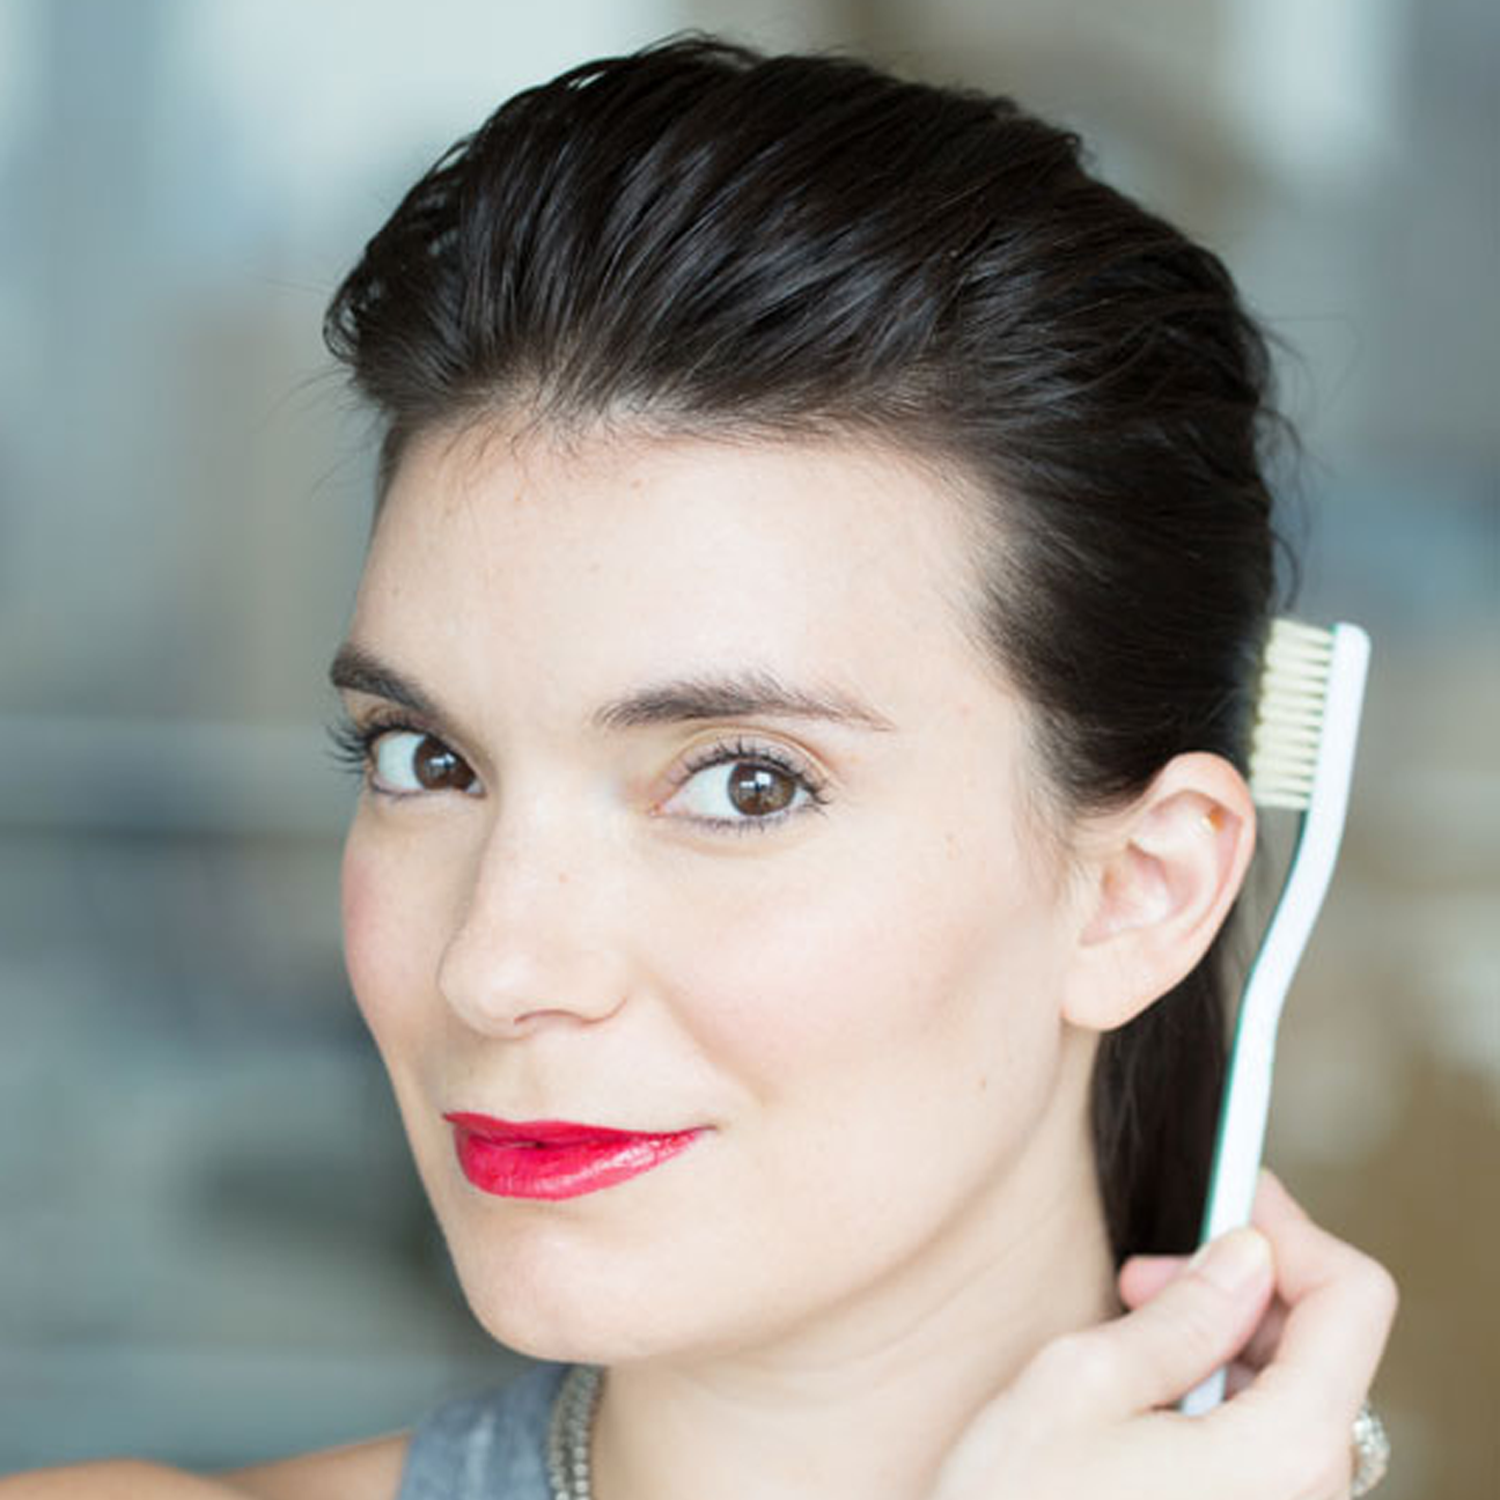 Tame flyaways, de-clump brows, and more beauty hacks to try with a toothbrush!